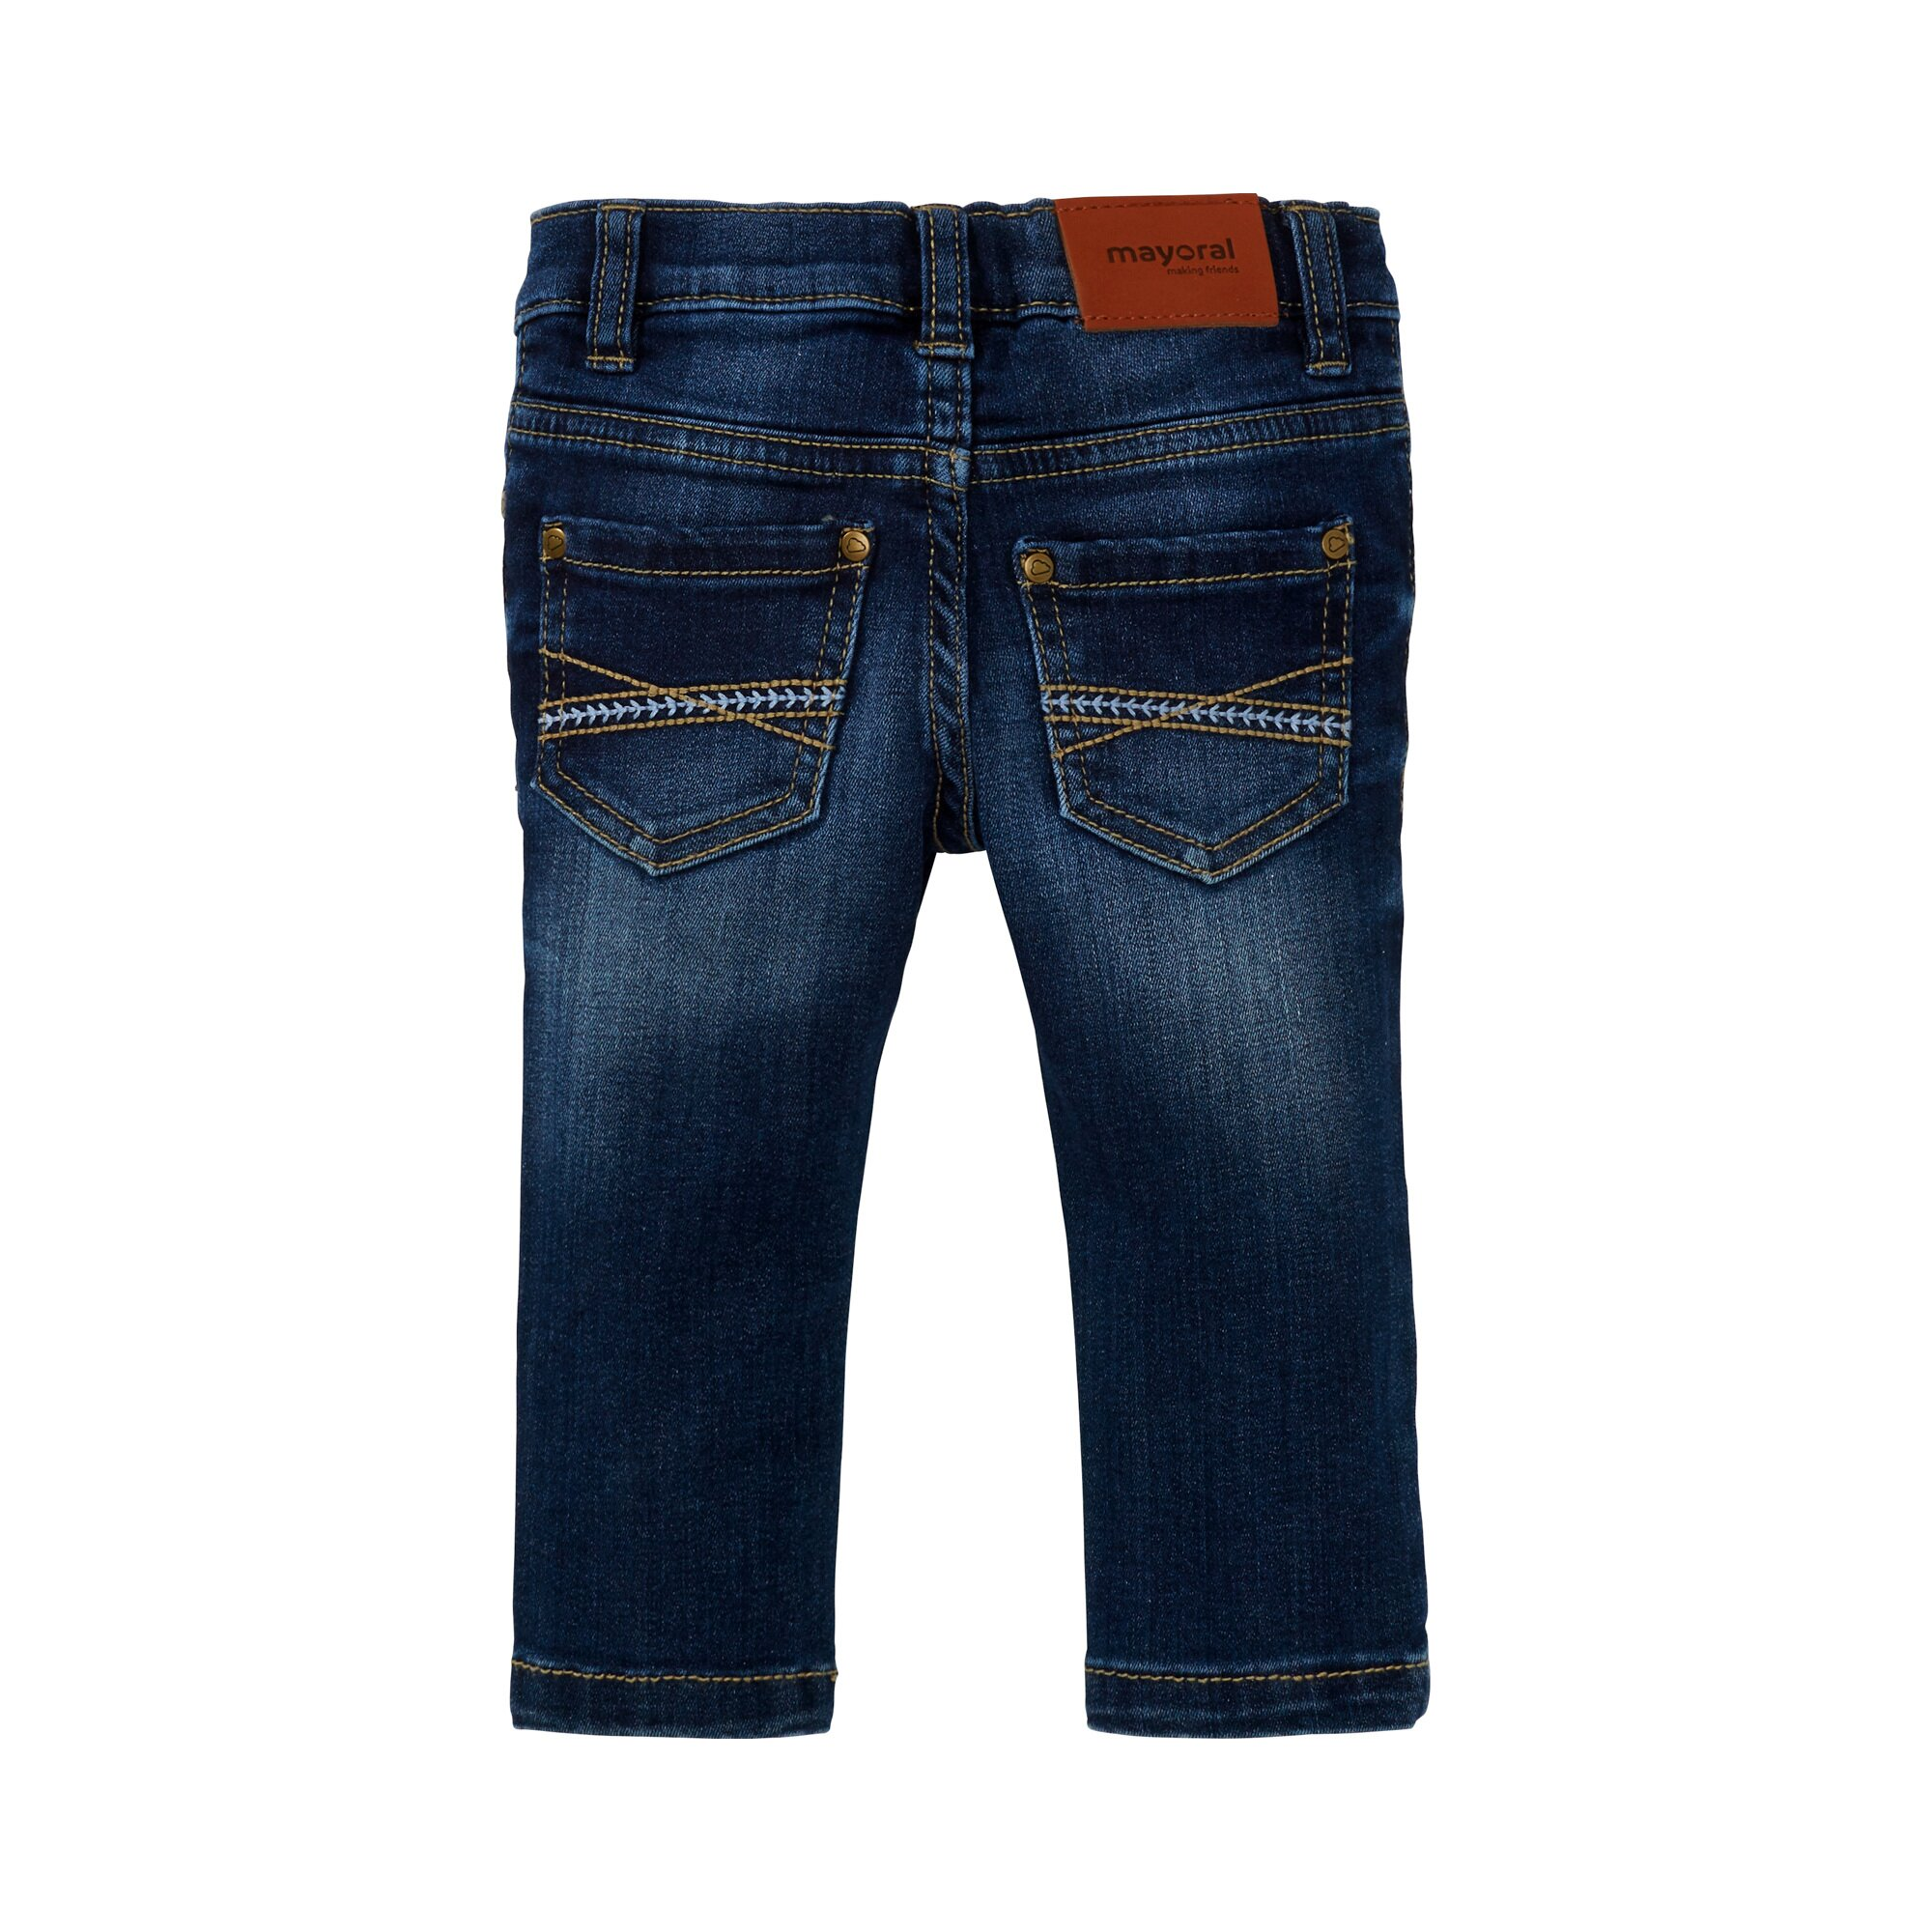 mayoral-jeans